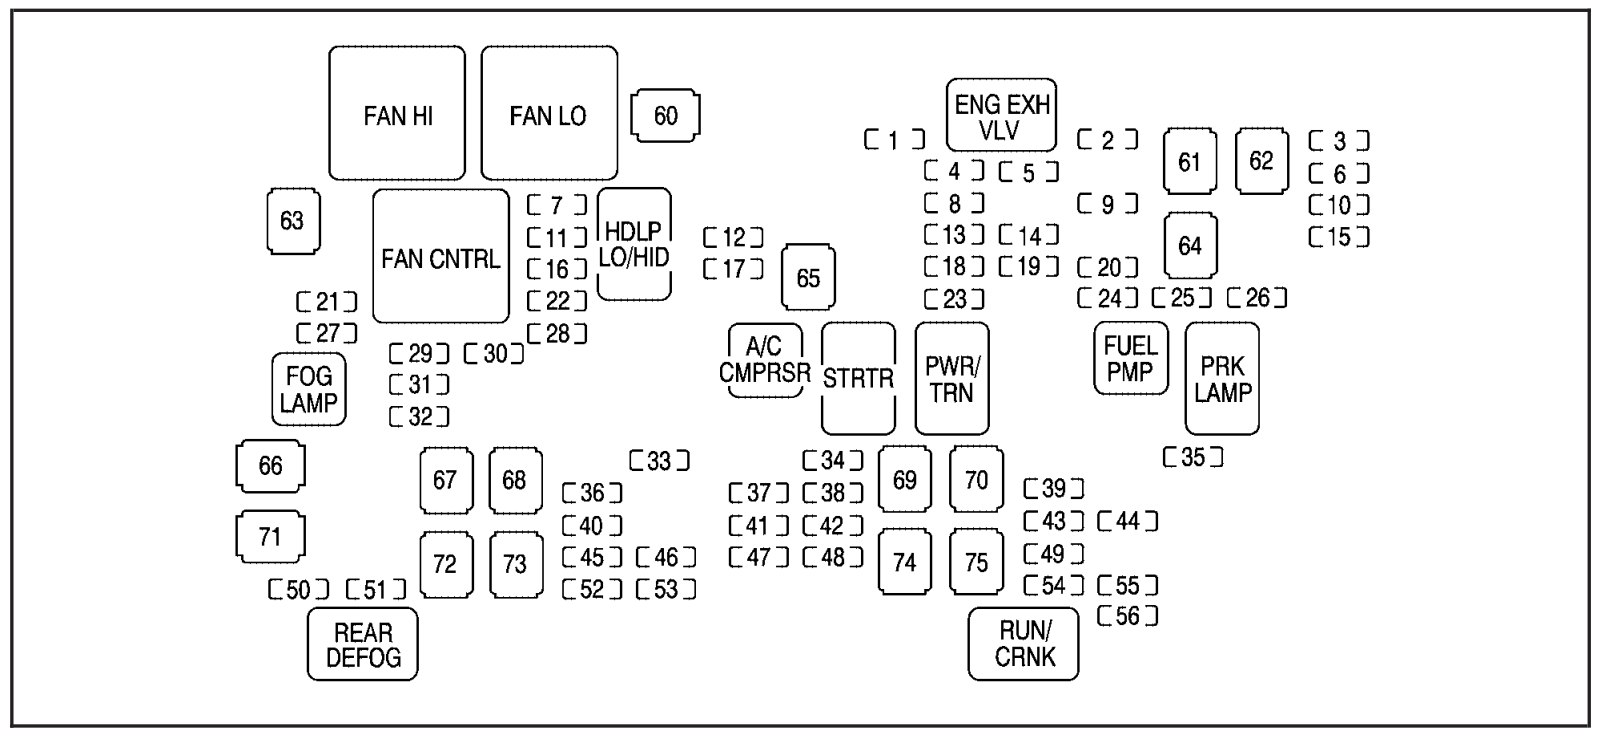 2012 Tahoe Fuse Box - Wiring Diagram Features